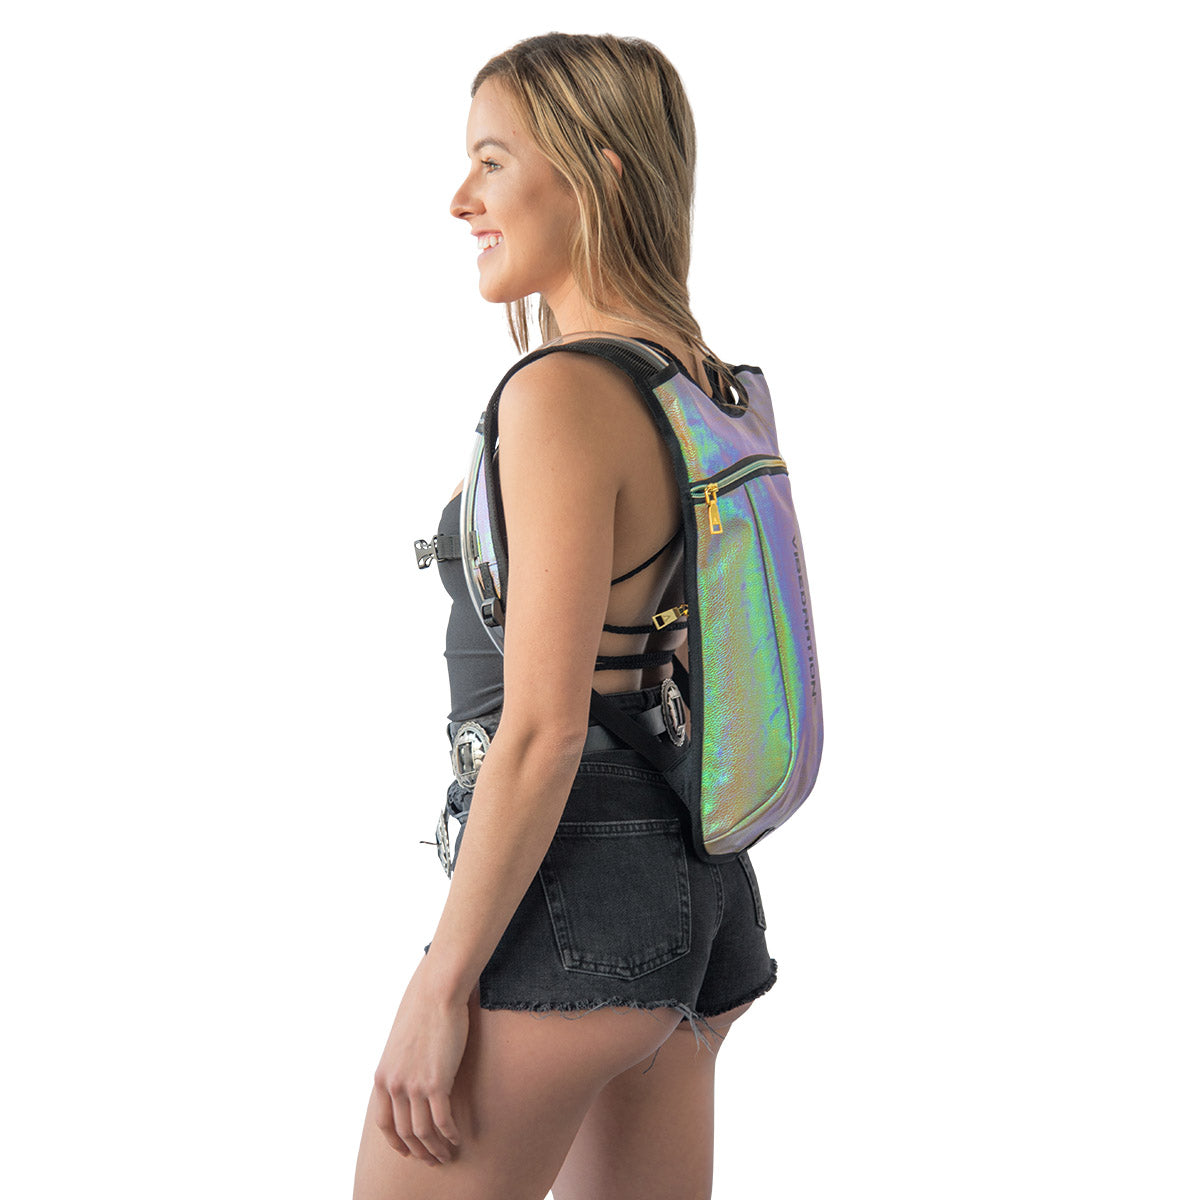 Lavender Lime Rave Hydration Pack